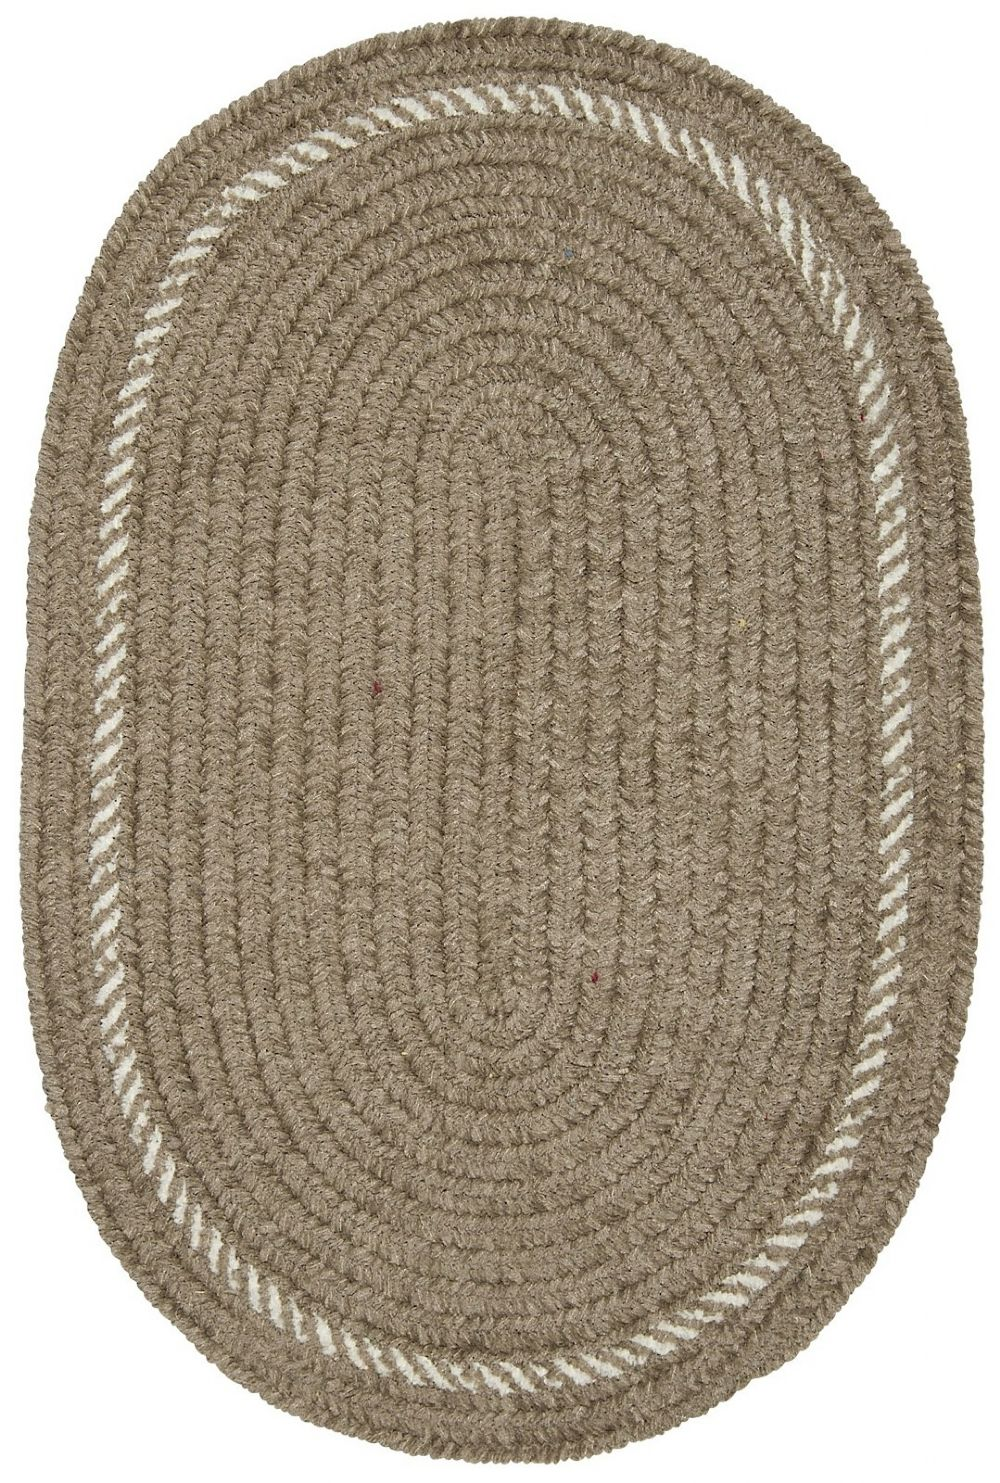 colonial mills twist & shout braided area rug collection